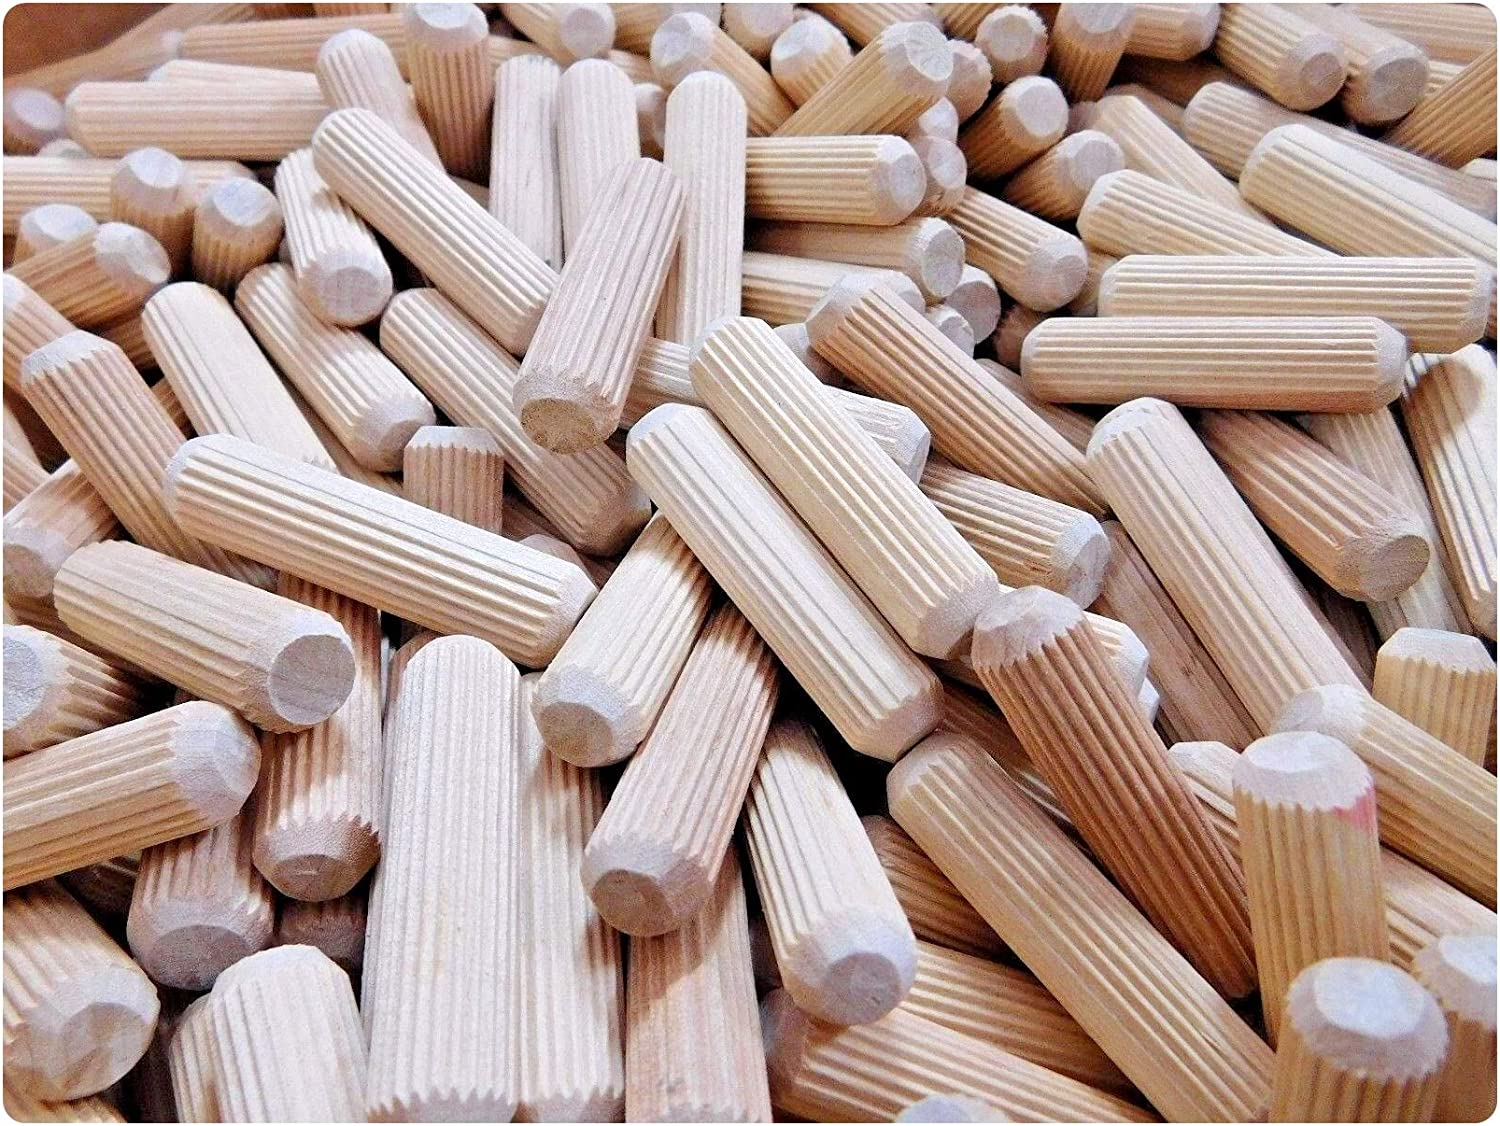 50 Pcs Fluted Wooden Dowel Pins 1//2 x 2 for Furniture